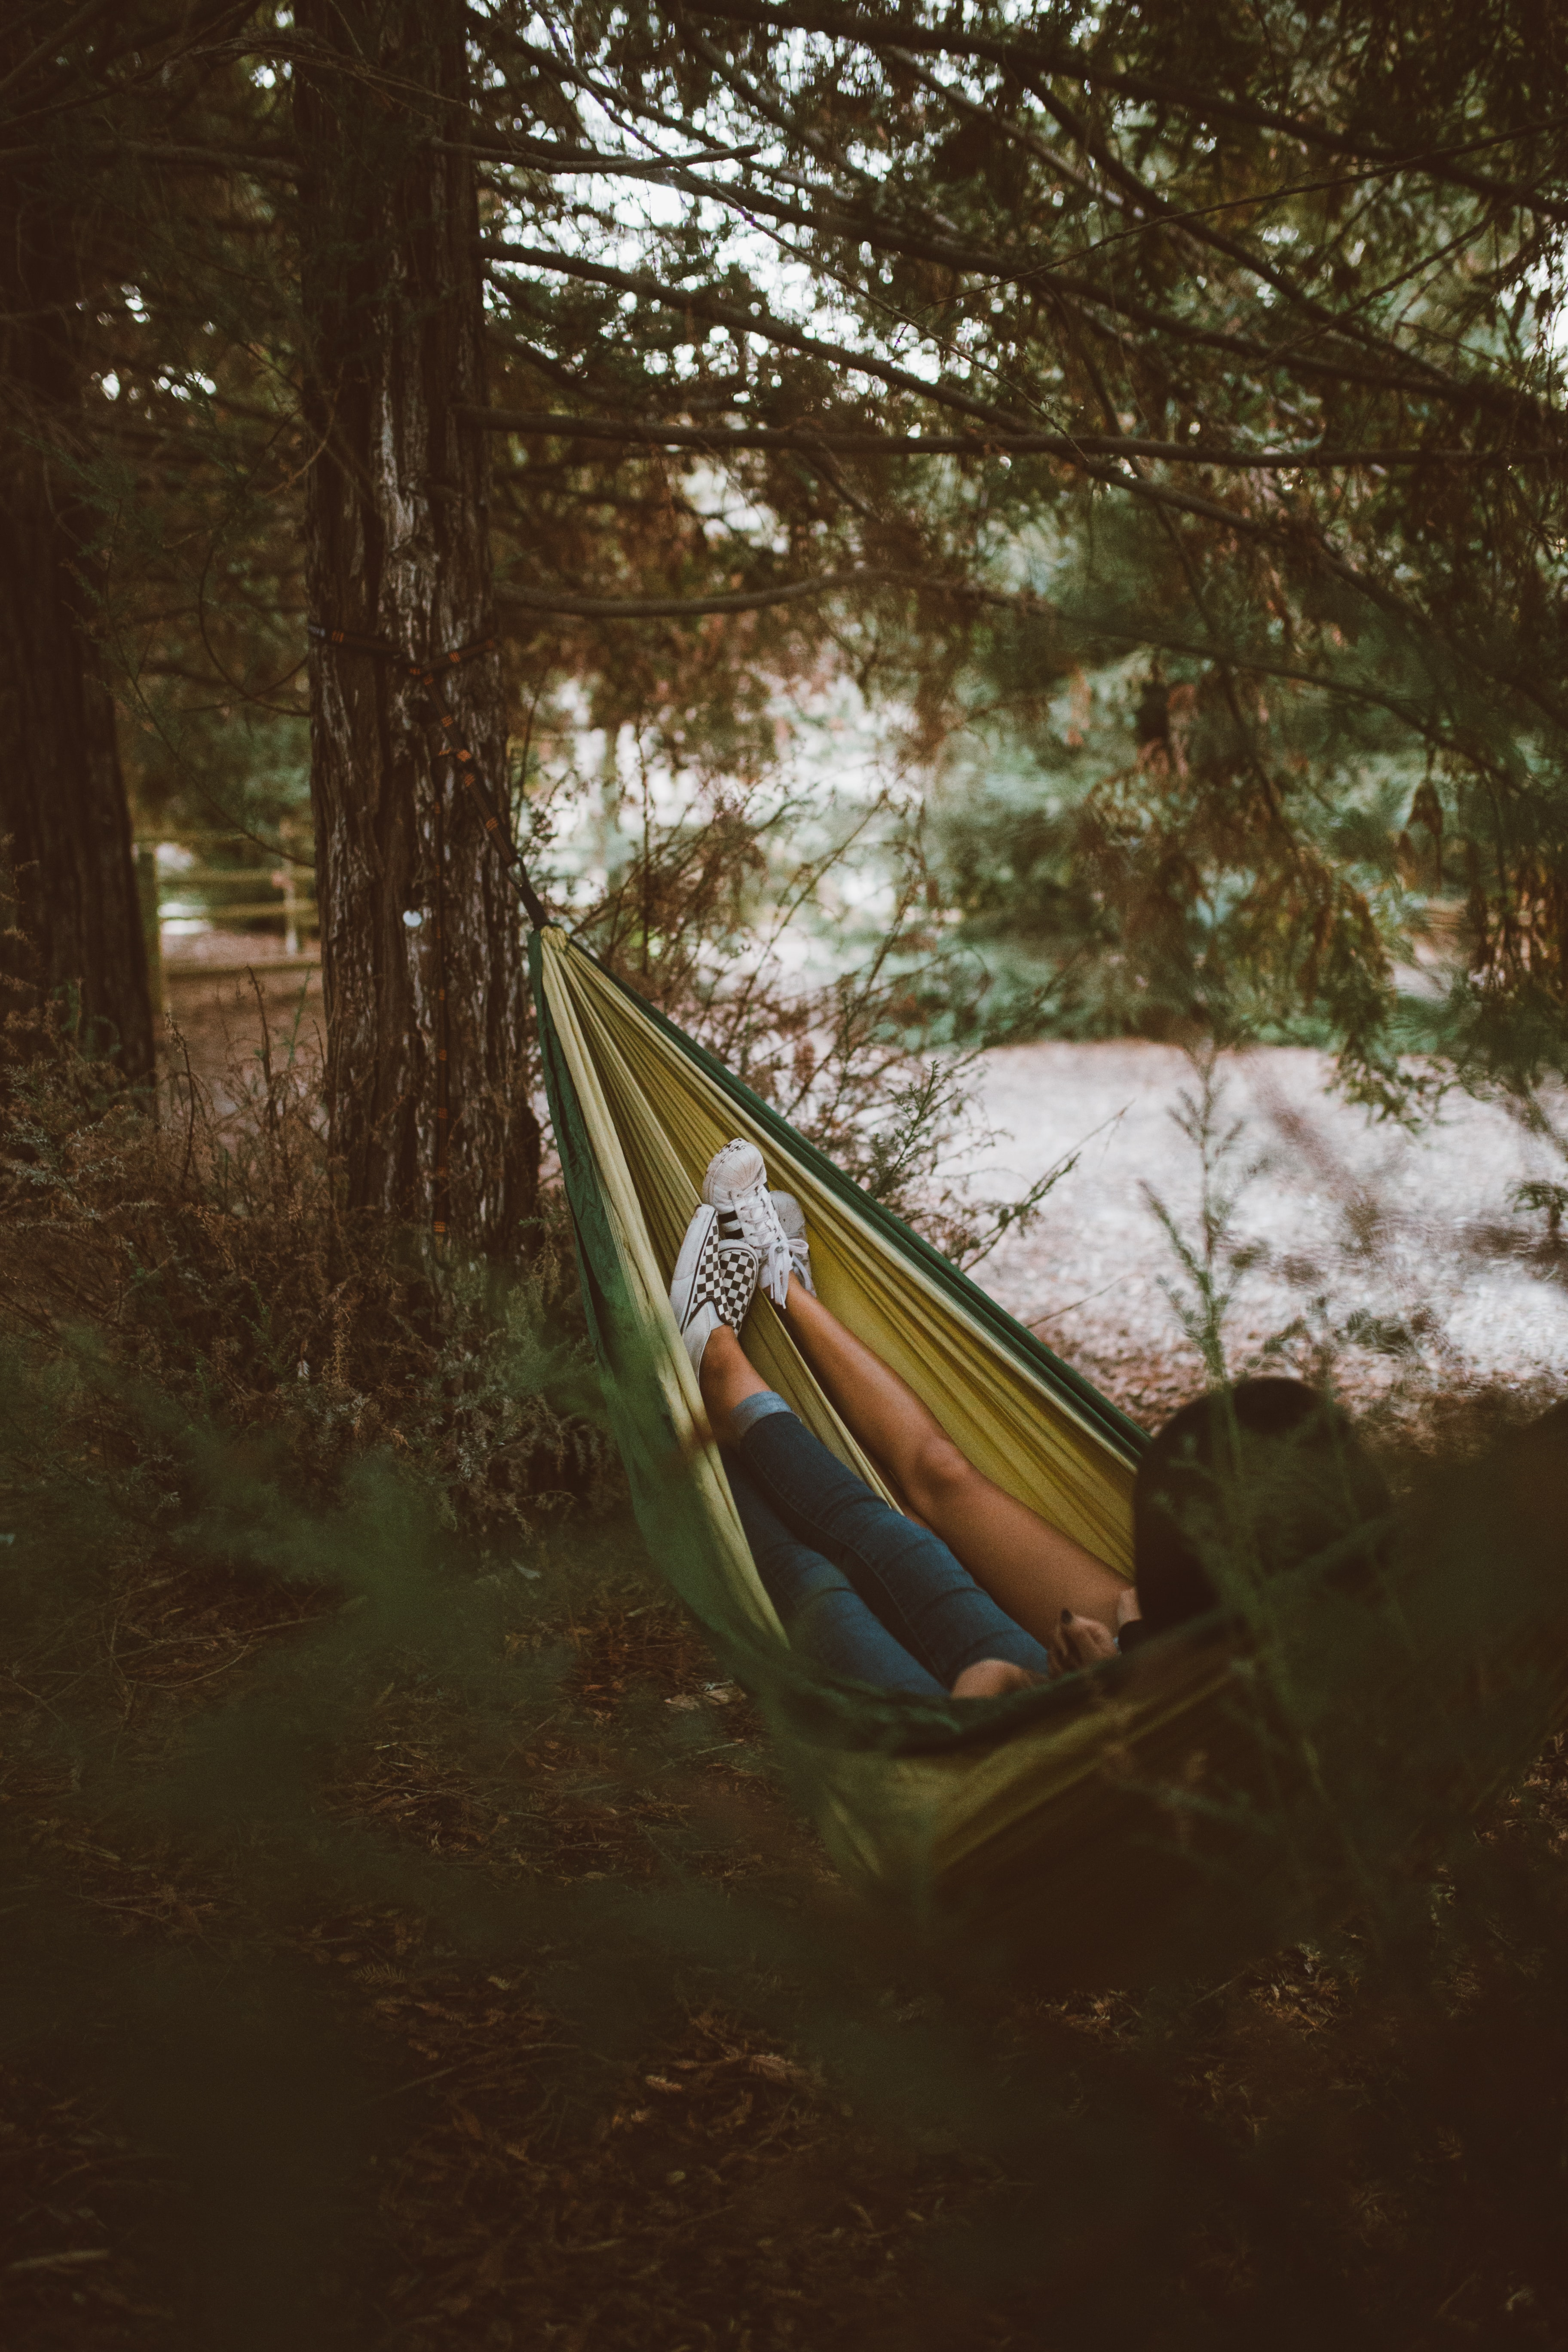 Two people in a hammock hanging between trees